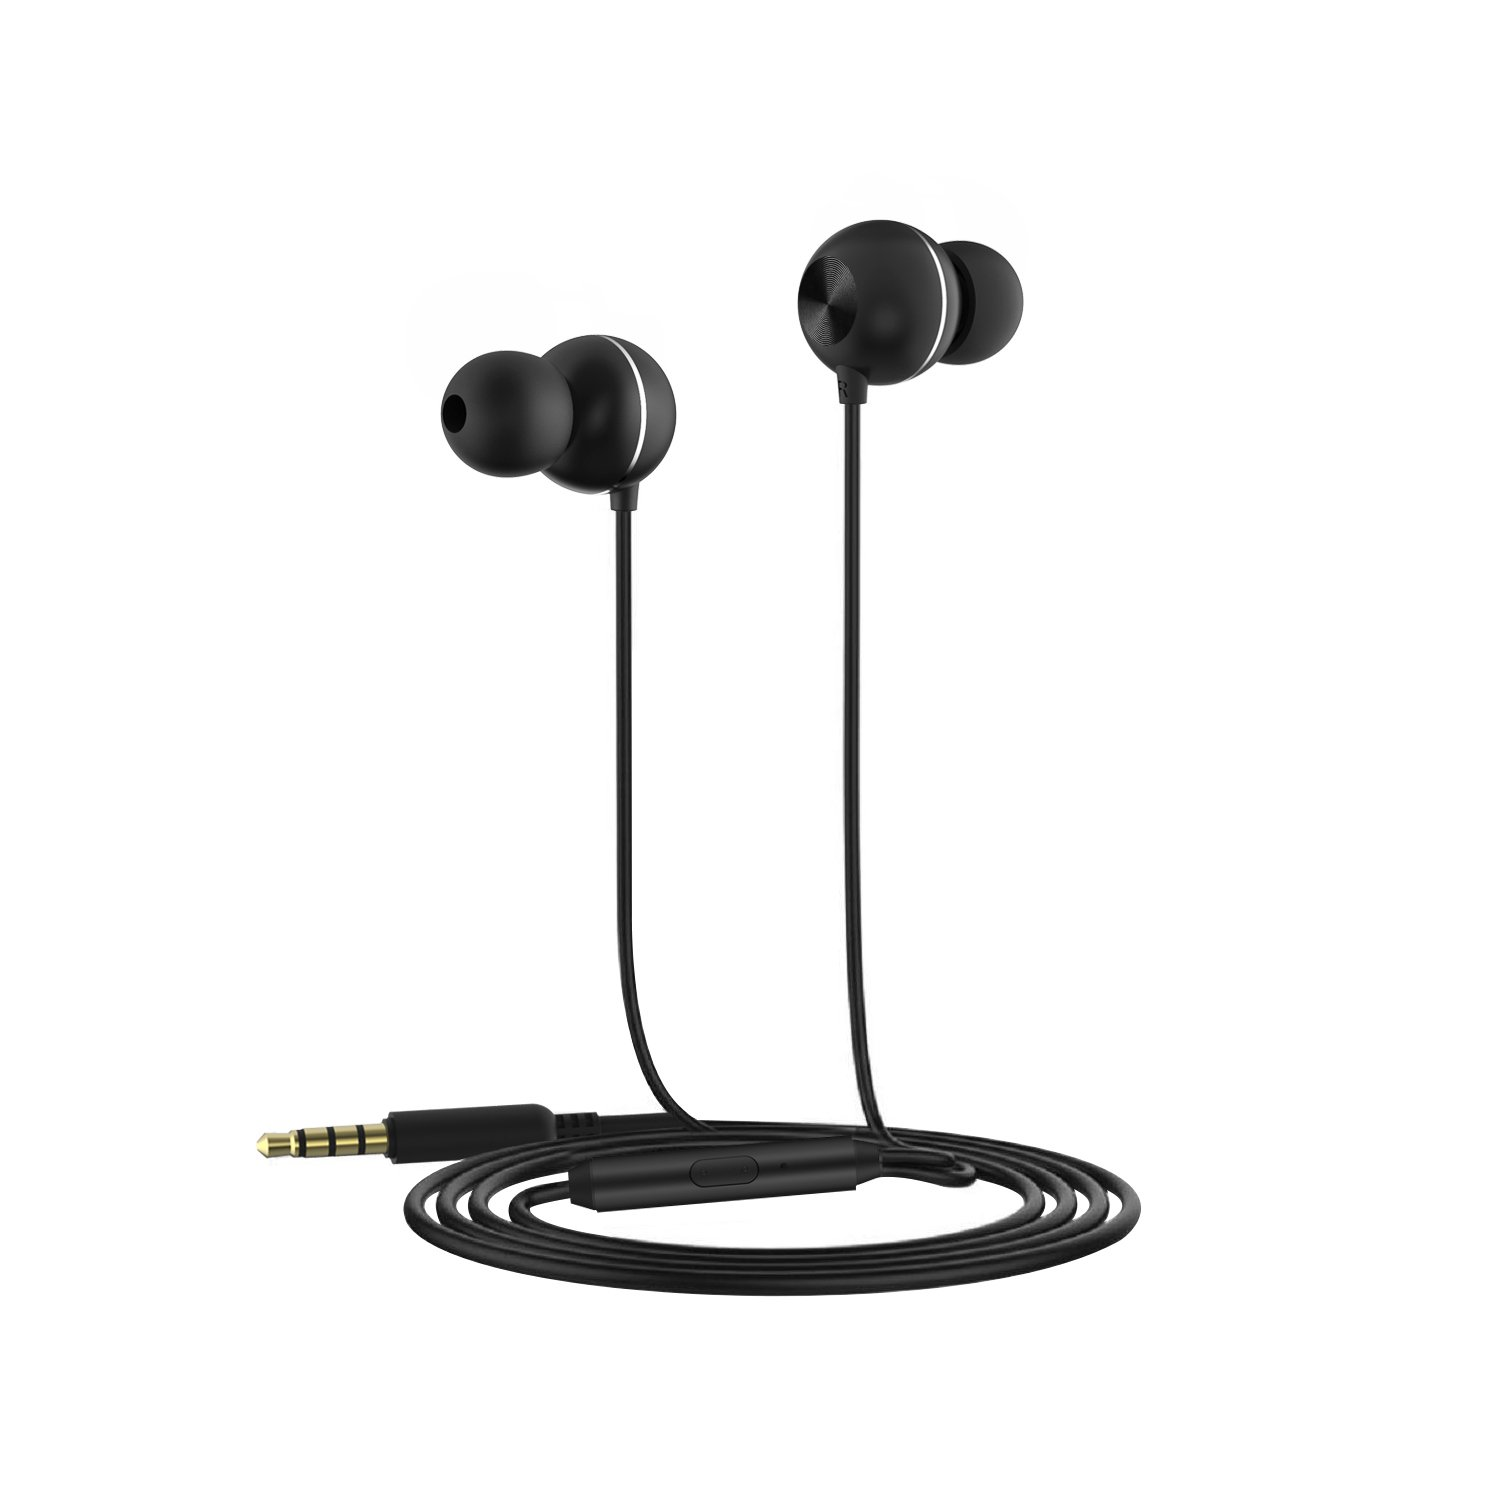 Wired Earphones with Microphone in Ear Earbuds Headphones 3D Surround Sound Noise Cancelling Good for Gaming Watching Movie for iPhone iPod iPad MP3 Samsung Android Smartphone by OAAO